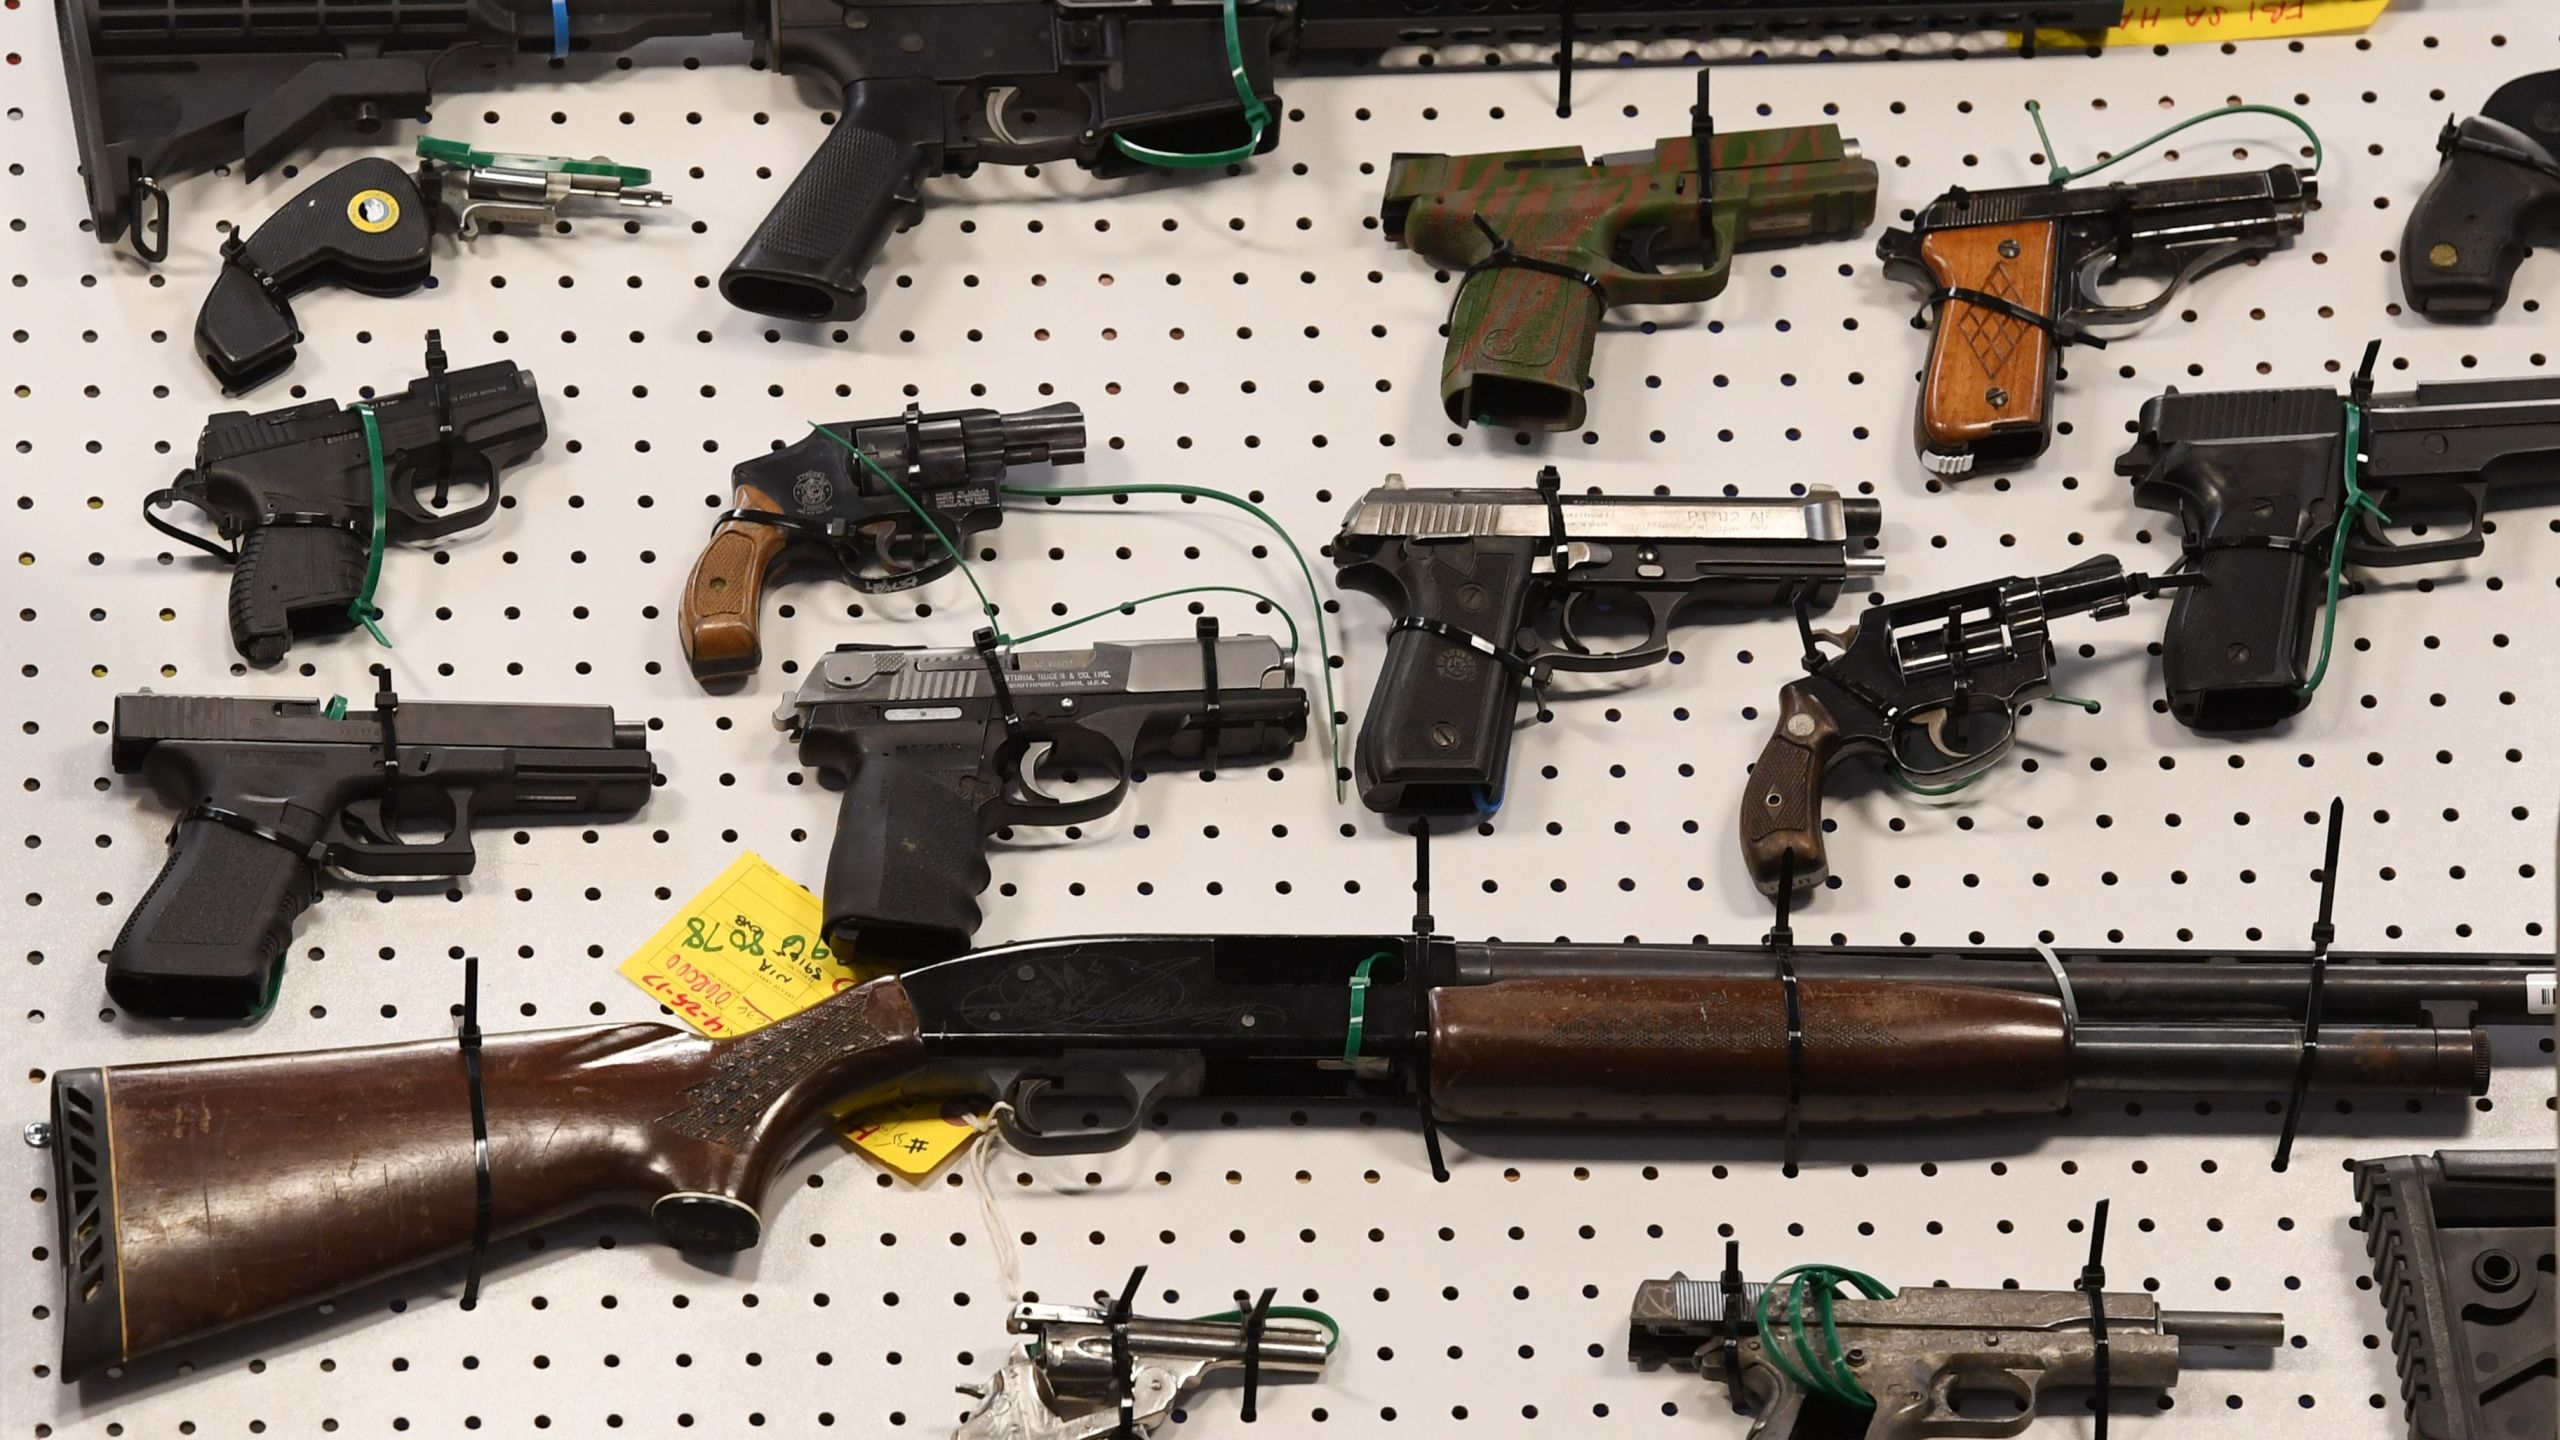 Representatives from the FBI and Los Angeles Police Department display weapons seized after a raid in which three dozen reputed members of street gangs from the San Fernando Valley and South Los Angeles were arrested on Feb. 13, 2019. (Credit: Mark Ralston / AFP / Getty Images)